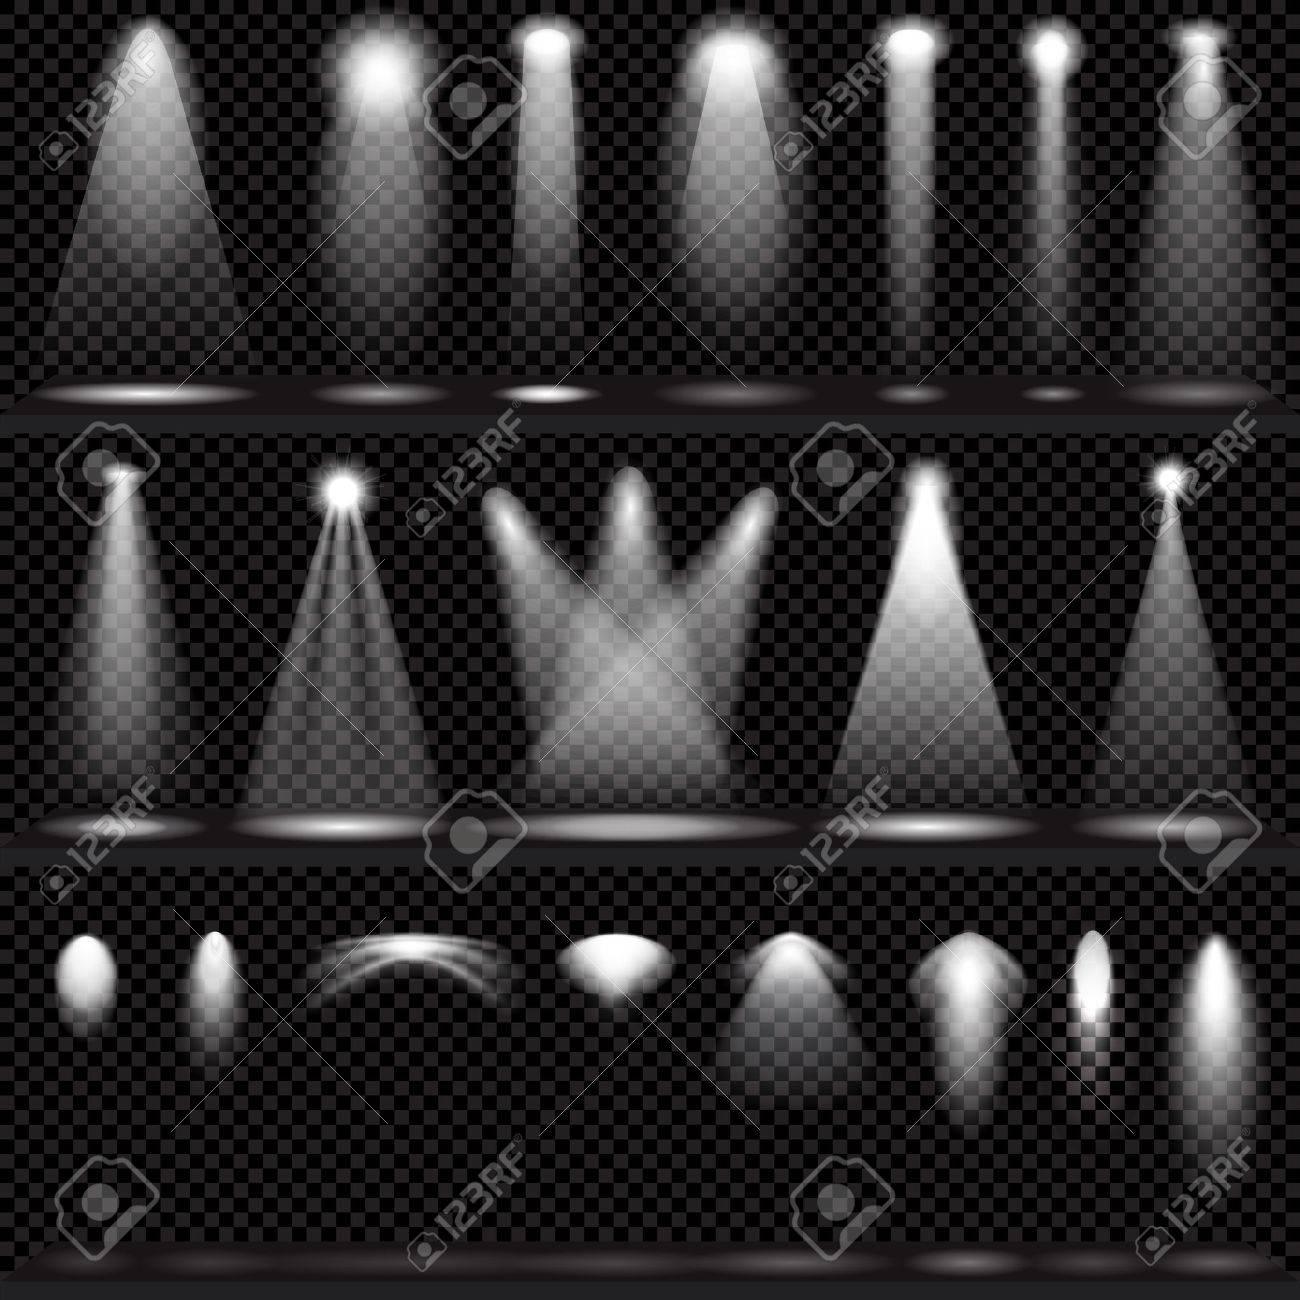 Scene illumination collection, transparent effects on a plaid dark background. Bright lighting with spotlights. - 54510500